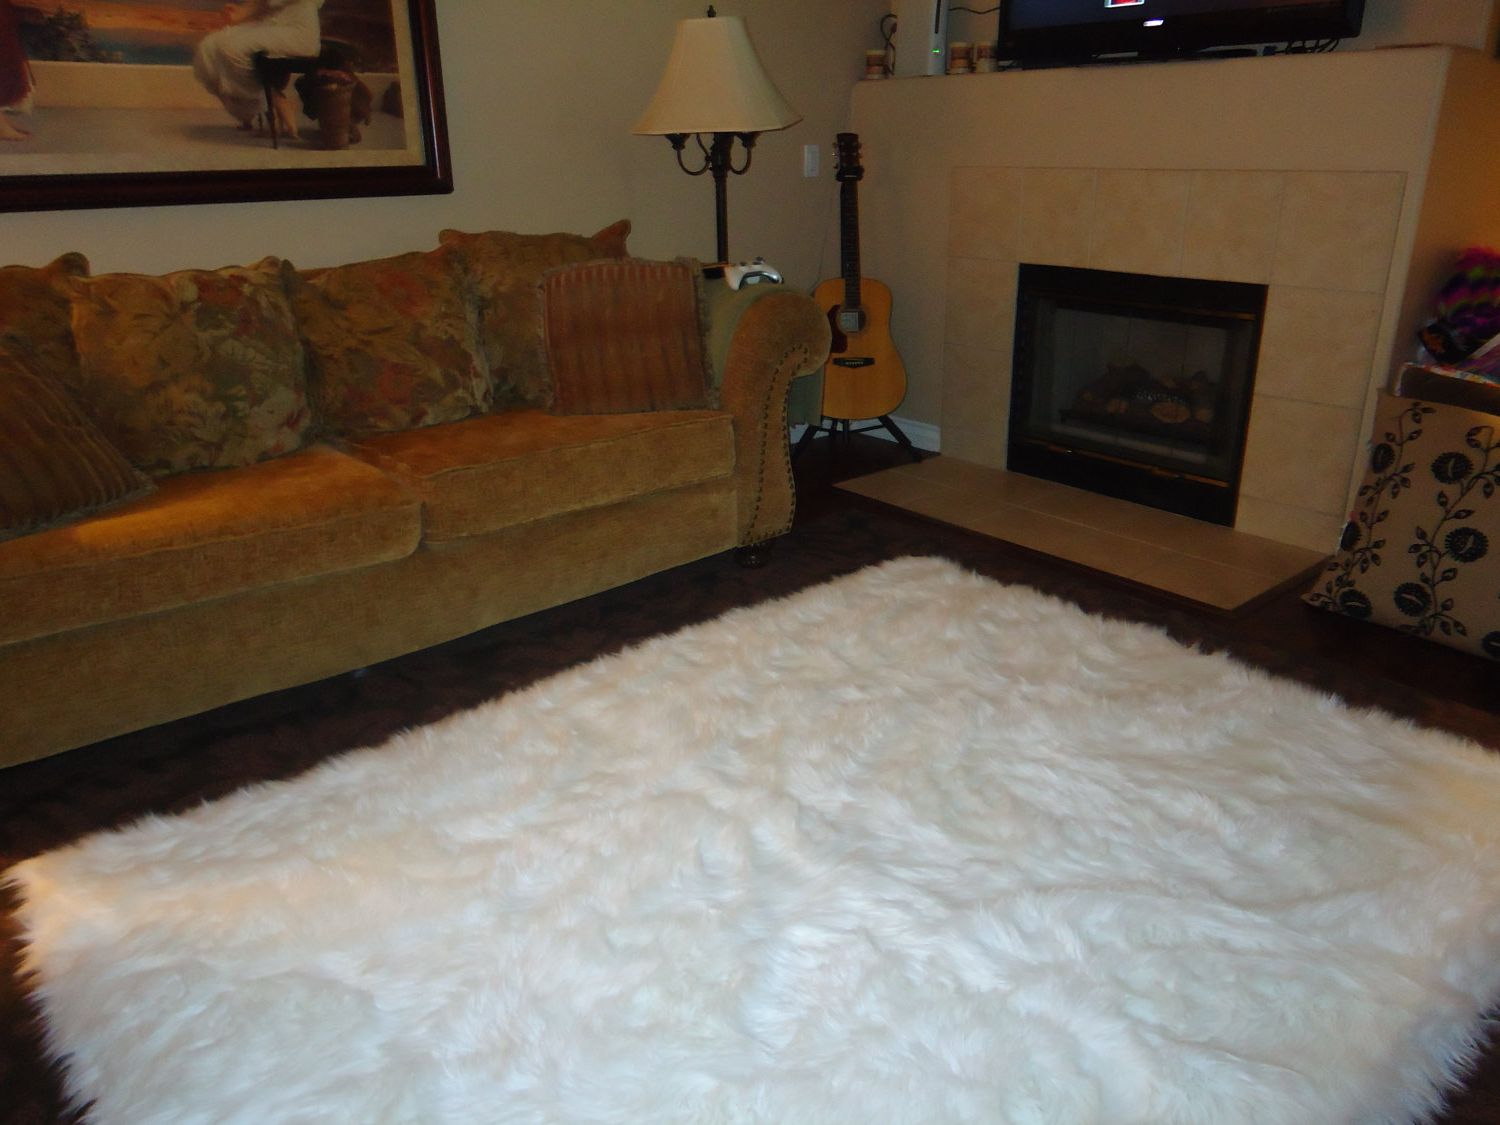 Dazzling white fur rug with Best wooden laminate flooring and sofa chairs for living room Ideas